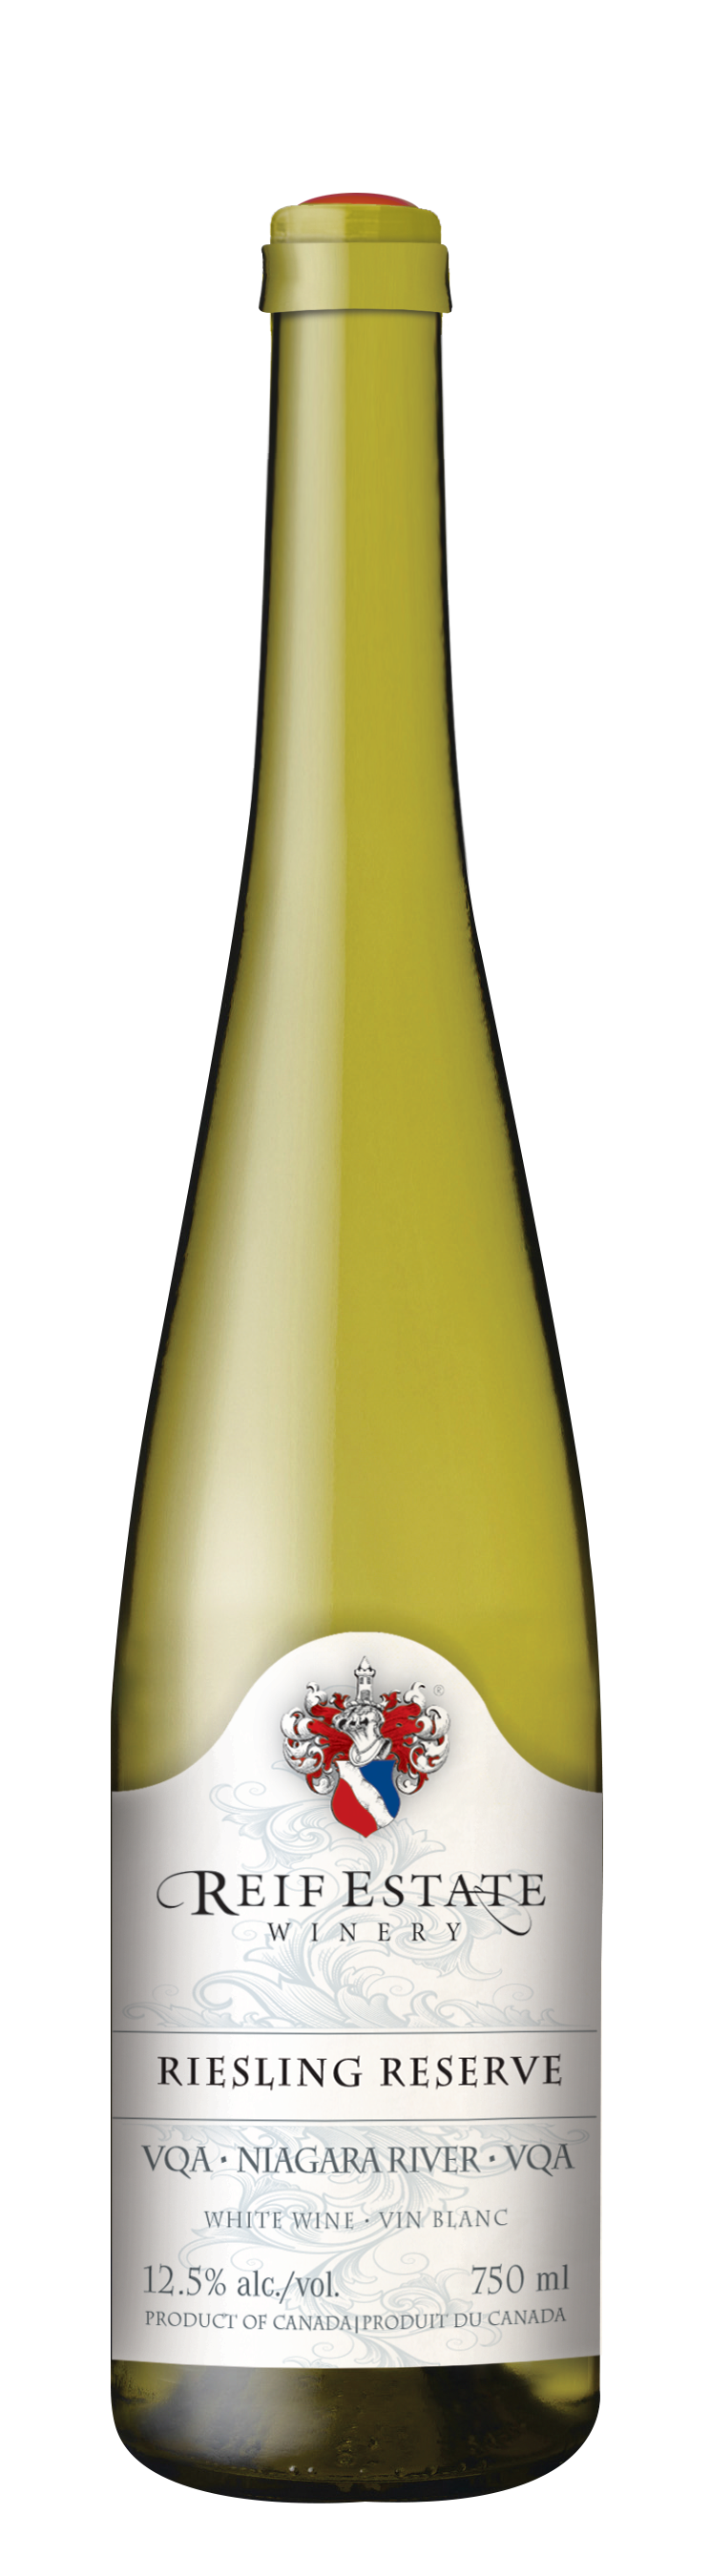 Reif Winery Riesling Reserve 2016